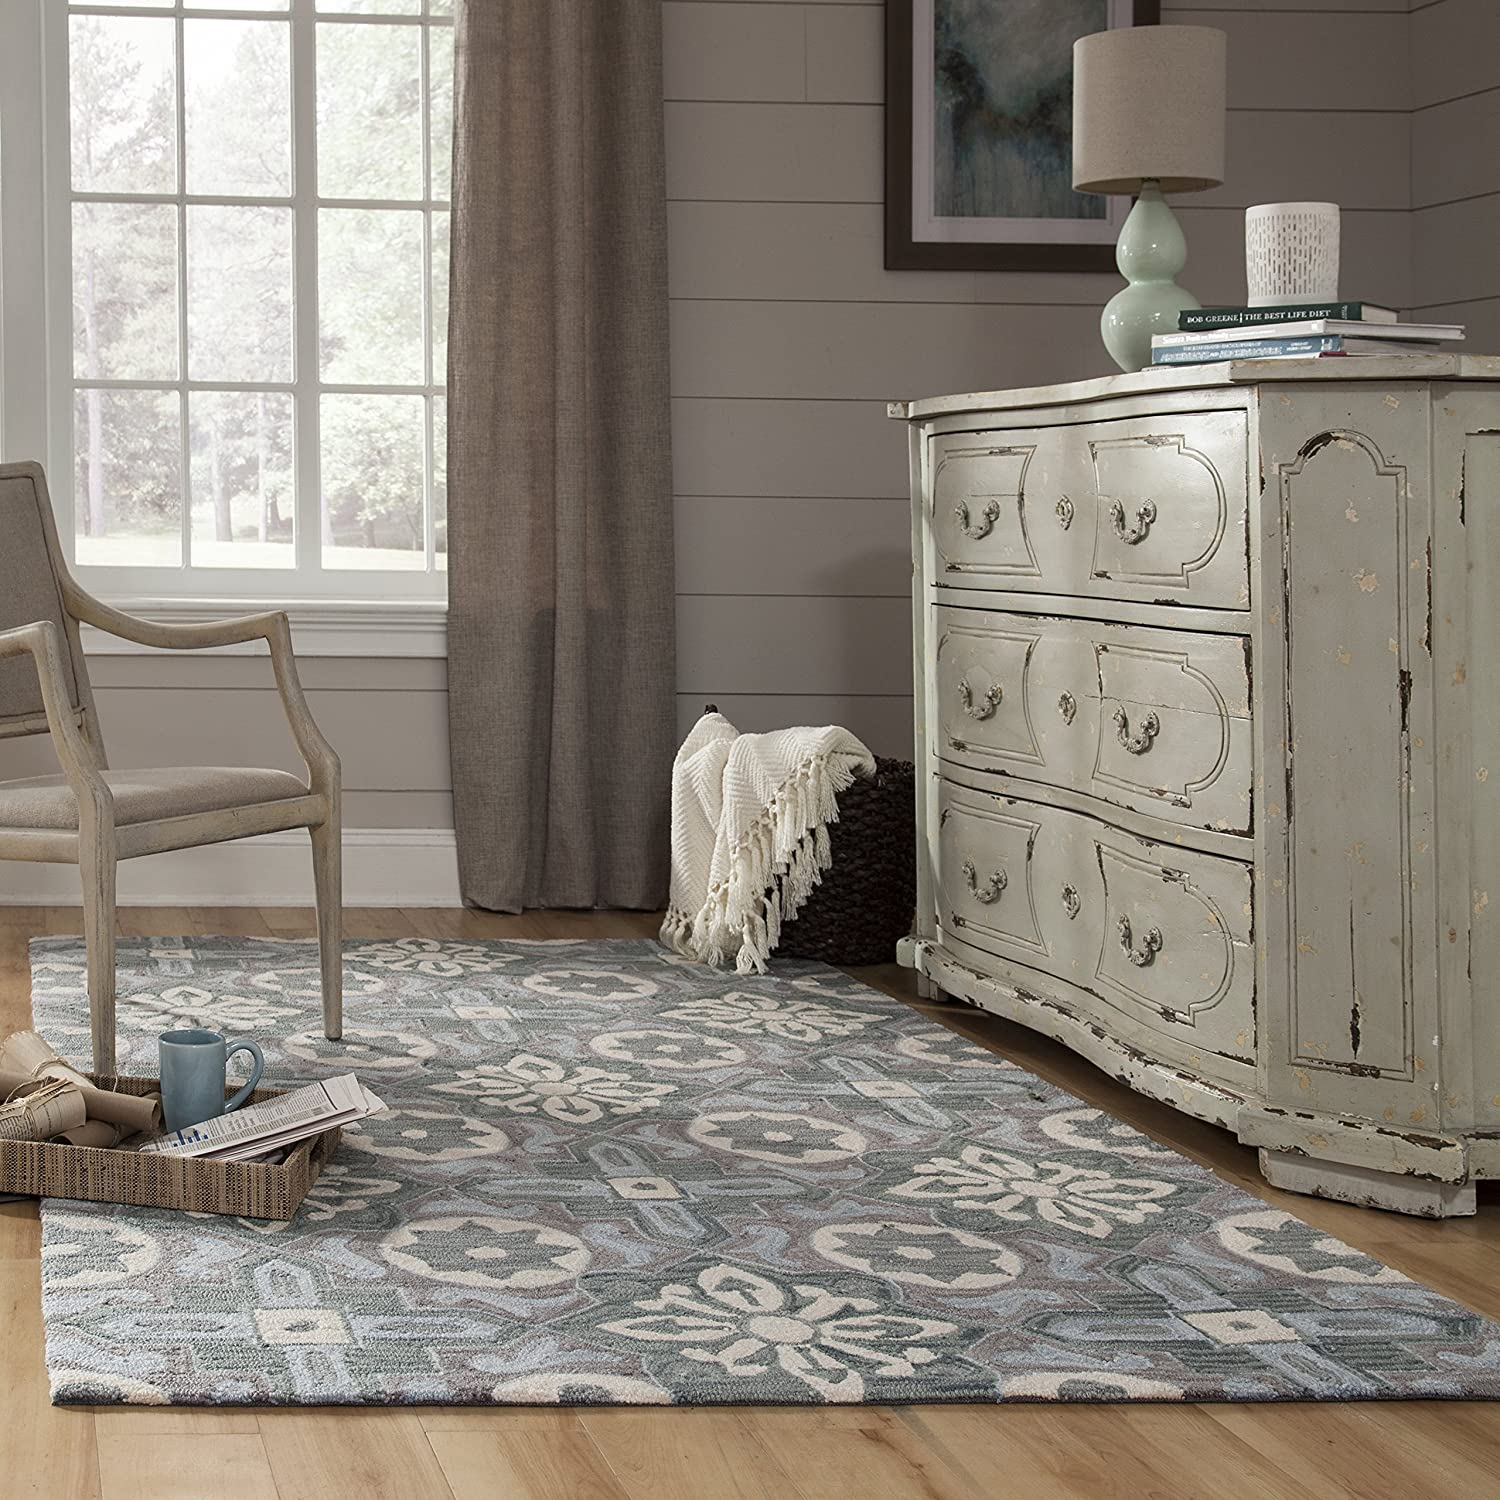 Momeni Rugs  Summit Collection 5 x 76 Hand Knotted Transitional Area Rug Grey 5/' x 7/'6 Inc DROPSHIP SUMITSUM13GRY5076